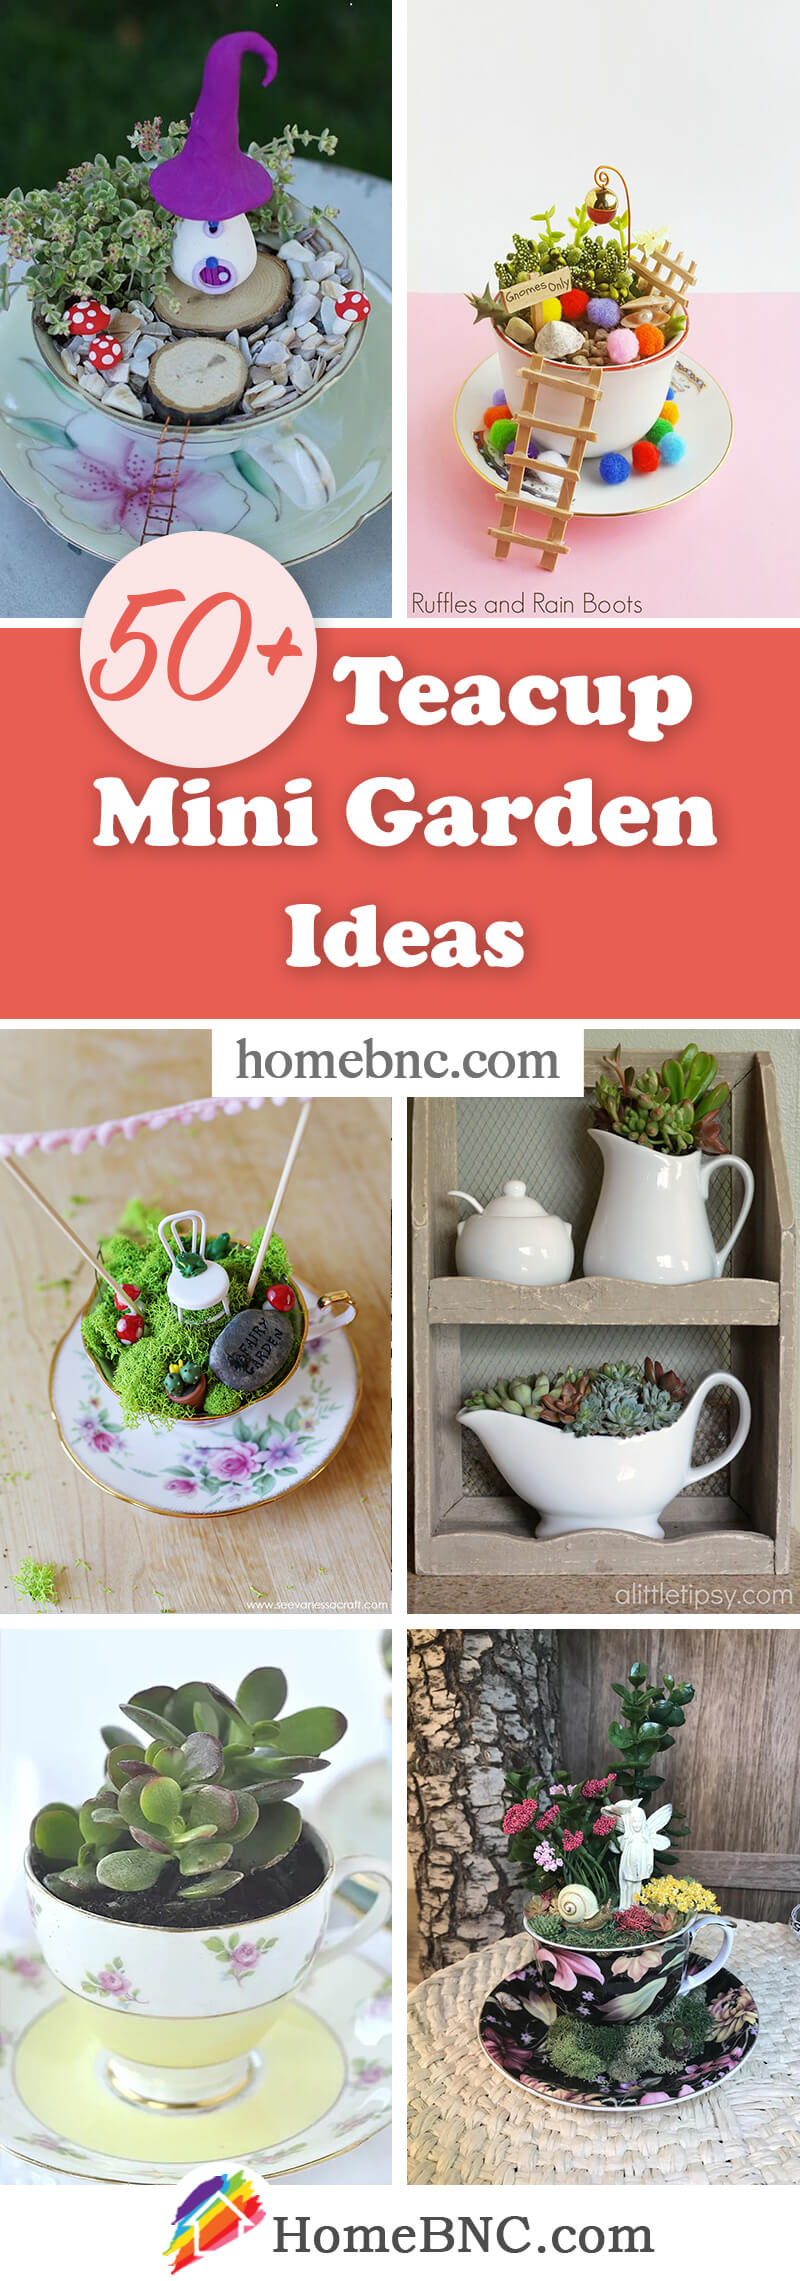 Teacup Mini Garden Ideas